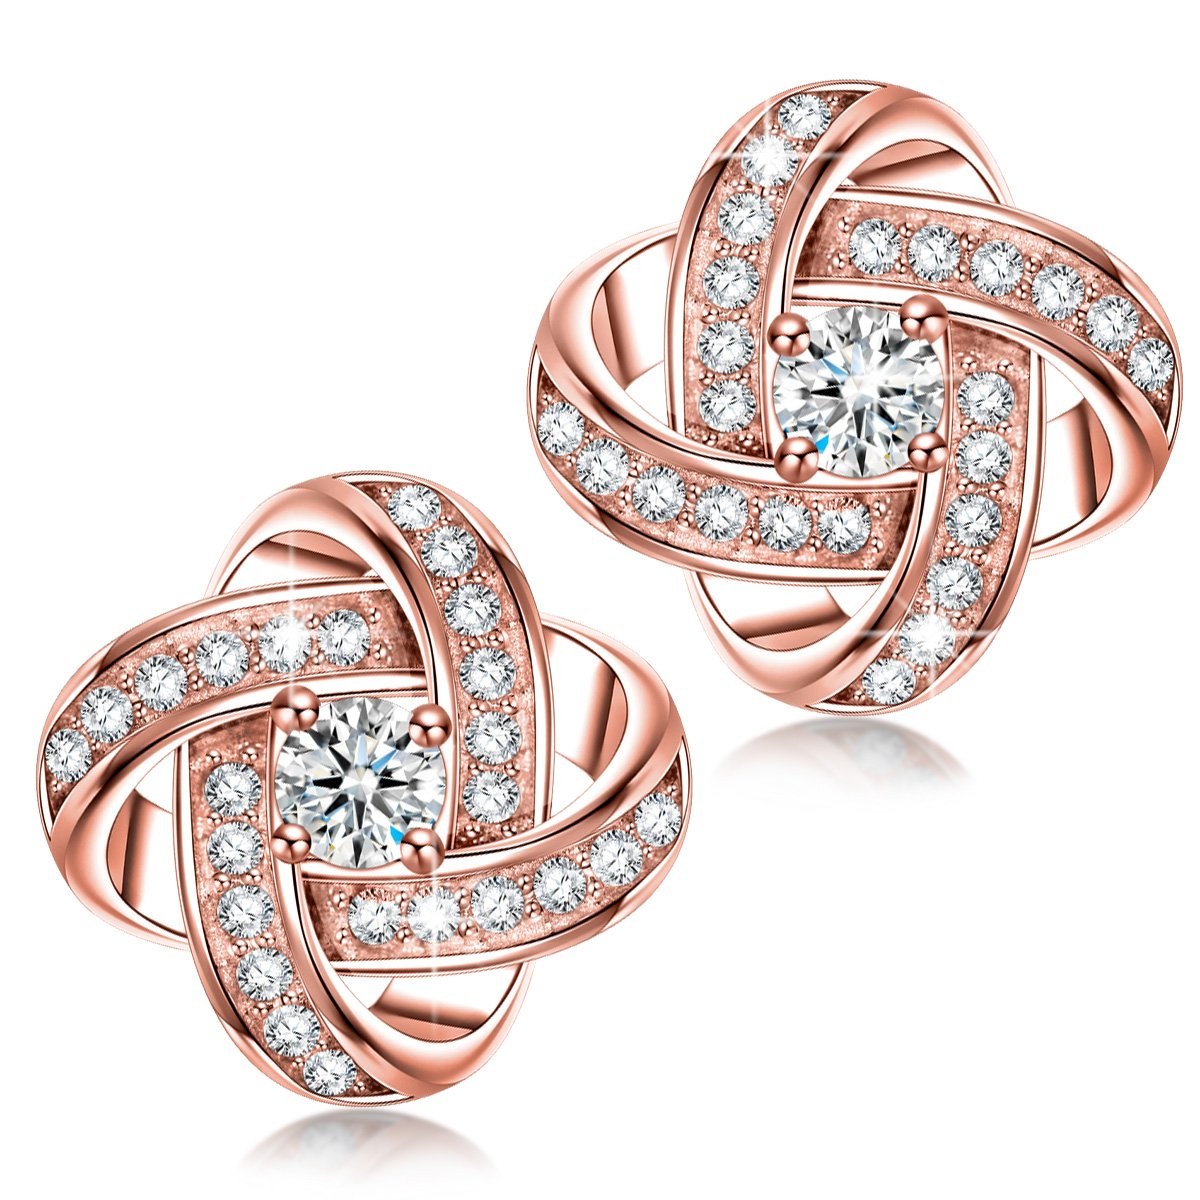 166d7d563ffef Alex Perry Women Pierced Stud Earrings Satellite Collection Rose Gold  Plated Cubic Zirconia Christmas Gifts Jewellery for Birthday Anniversary  Valentine s ...